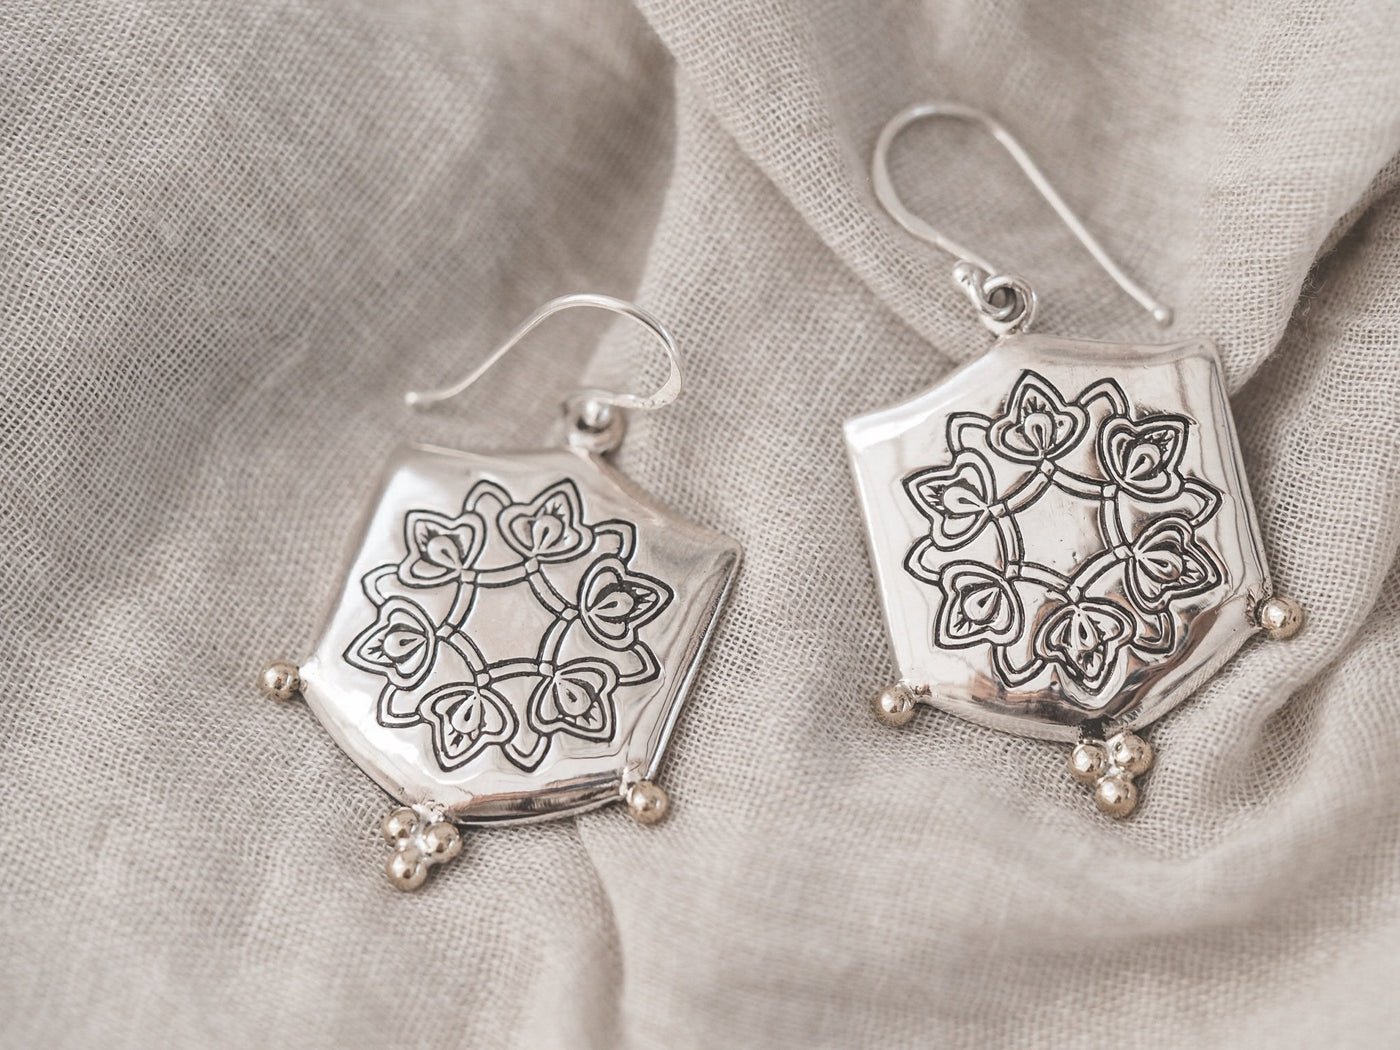 Abundance earrings sterling silver/brass - Celeste Twikler